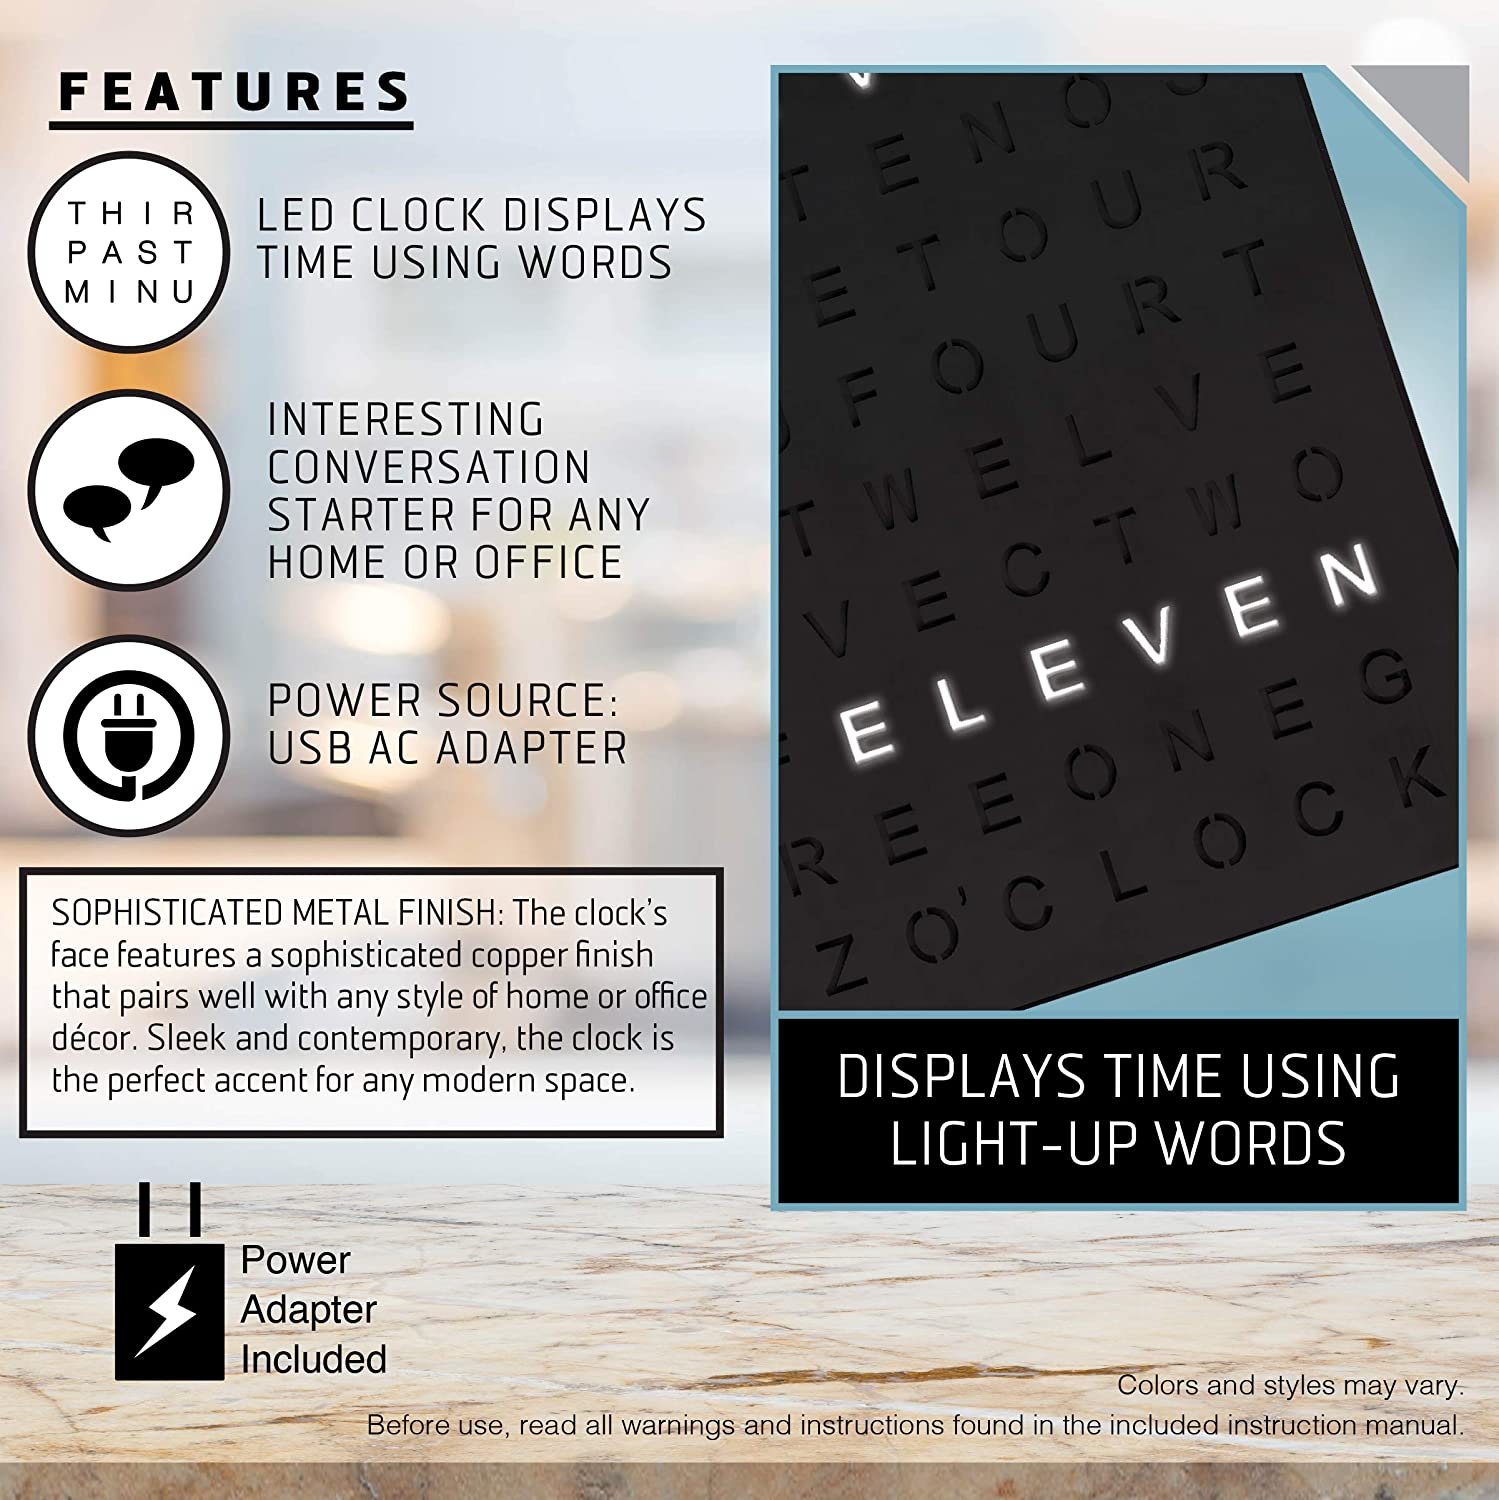 Sharper Image Light Up Electronic Word Clock Matte Black Finish With Led Light Display Usb Cord And Power Adapter 7 75in Square Face Unique